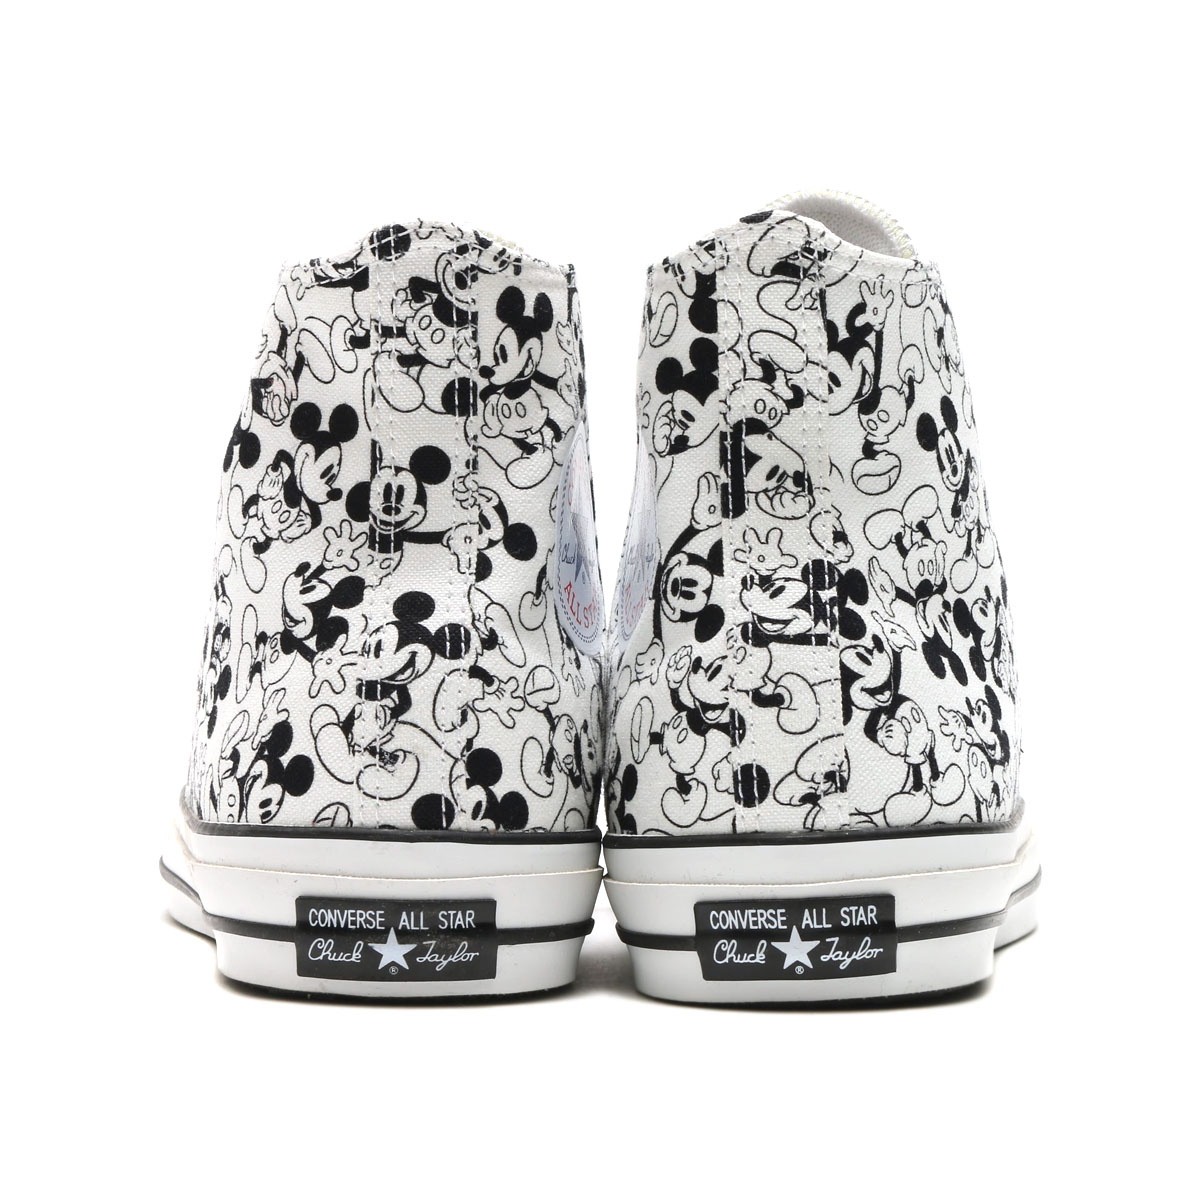 CONVERSE ALL STAR 100 MICKEY MOUSE PT HI (Converse all-stars 100 Mickey Mouse PT high) MONO 17SP-I